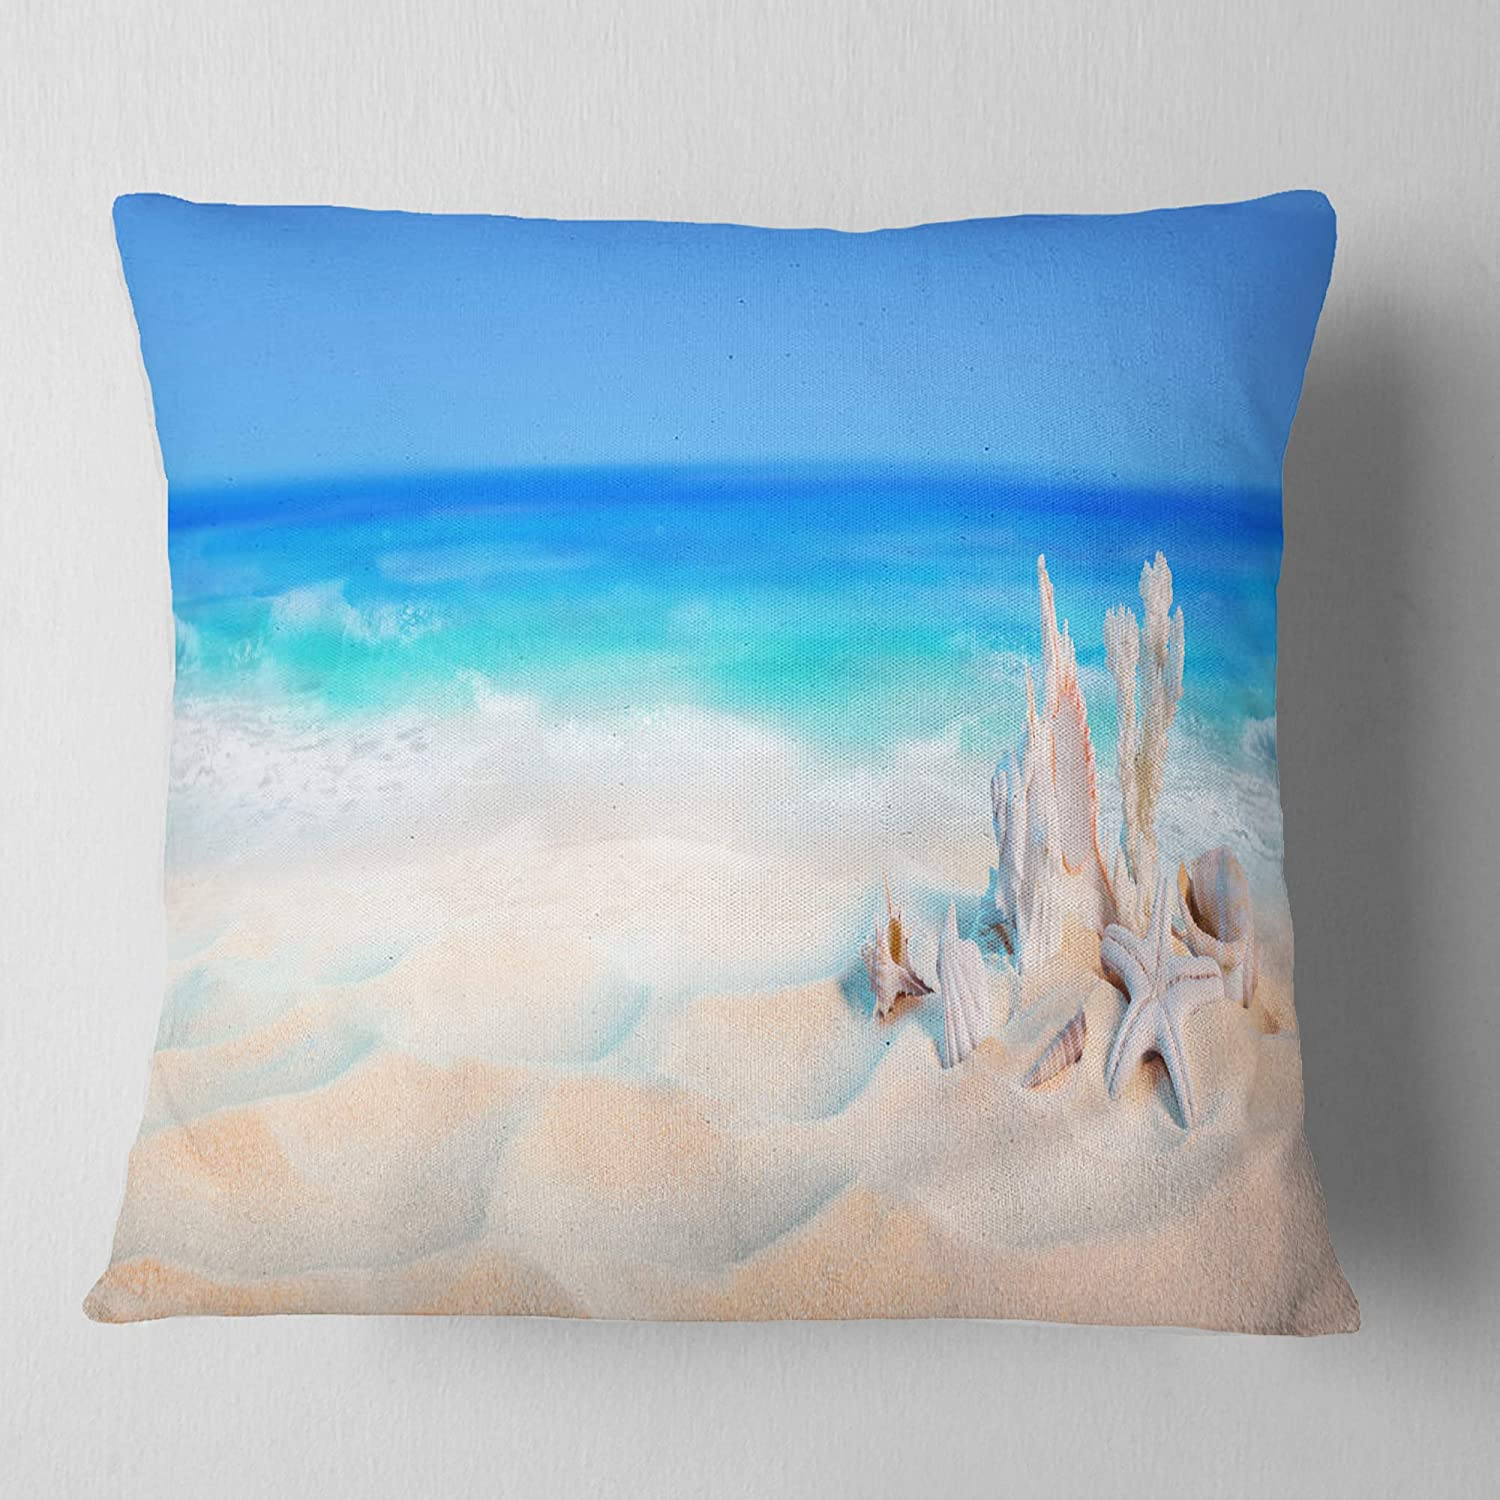 Designart CU8952-26-26 Seashells On Seashore Throw Pillow 26 x 26